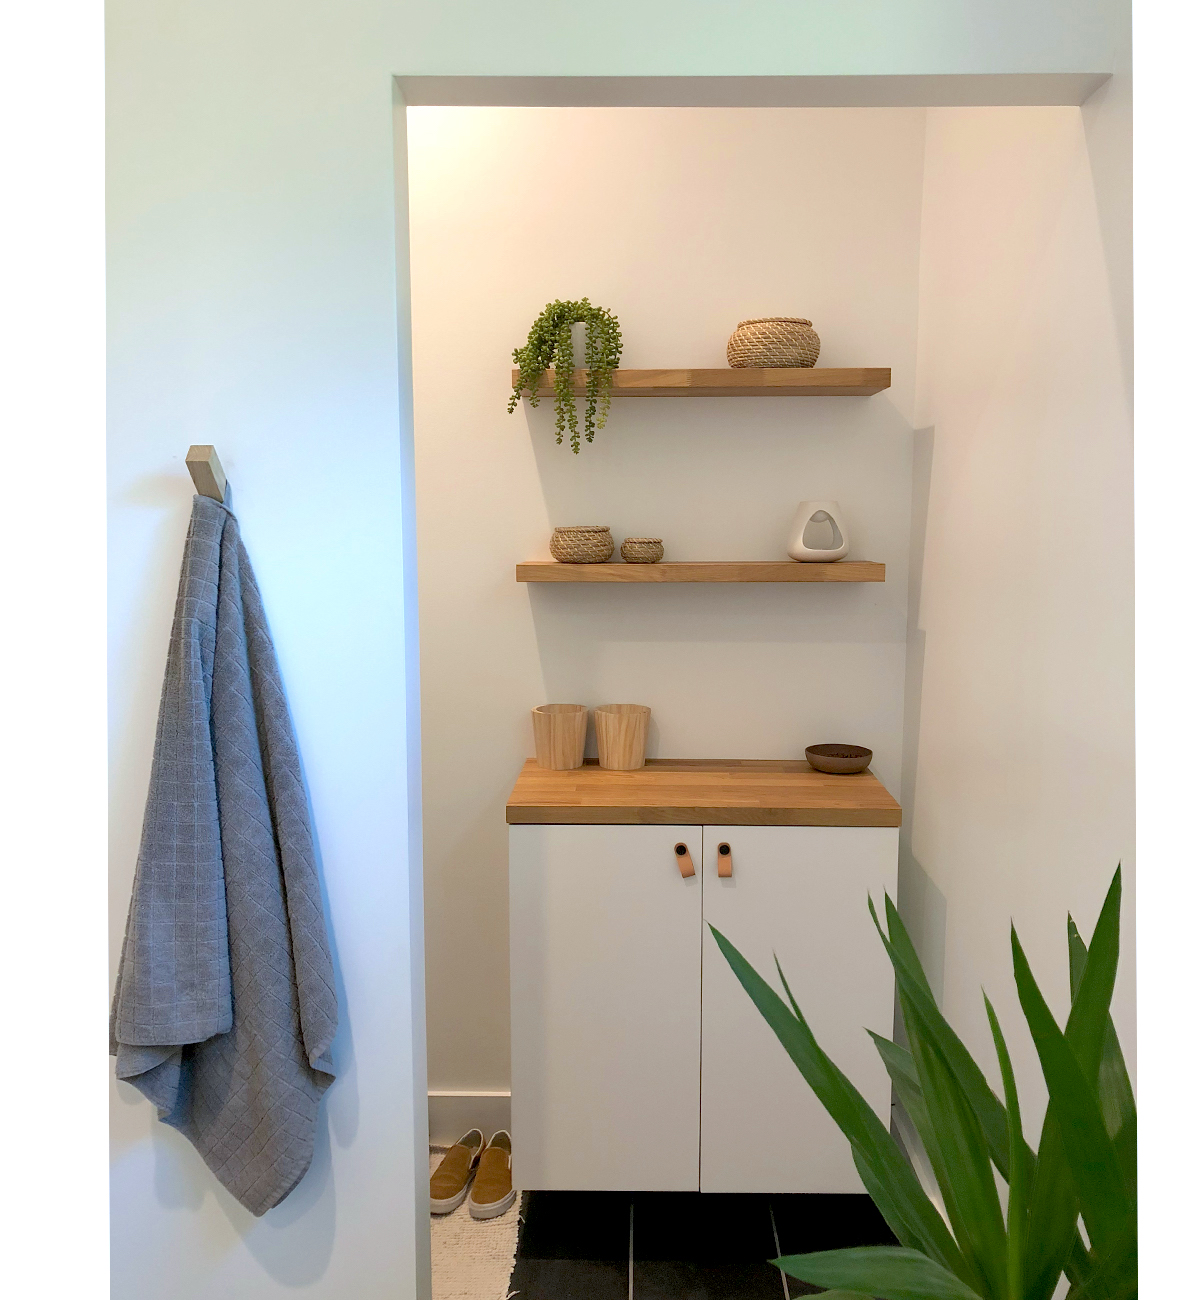 Stacy Allen Bathroom Shelves